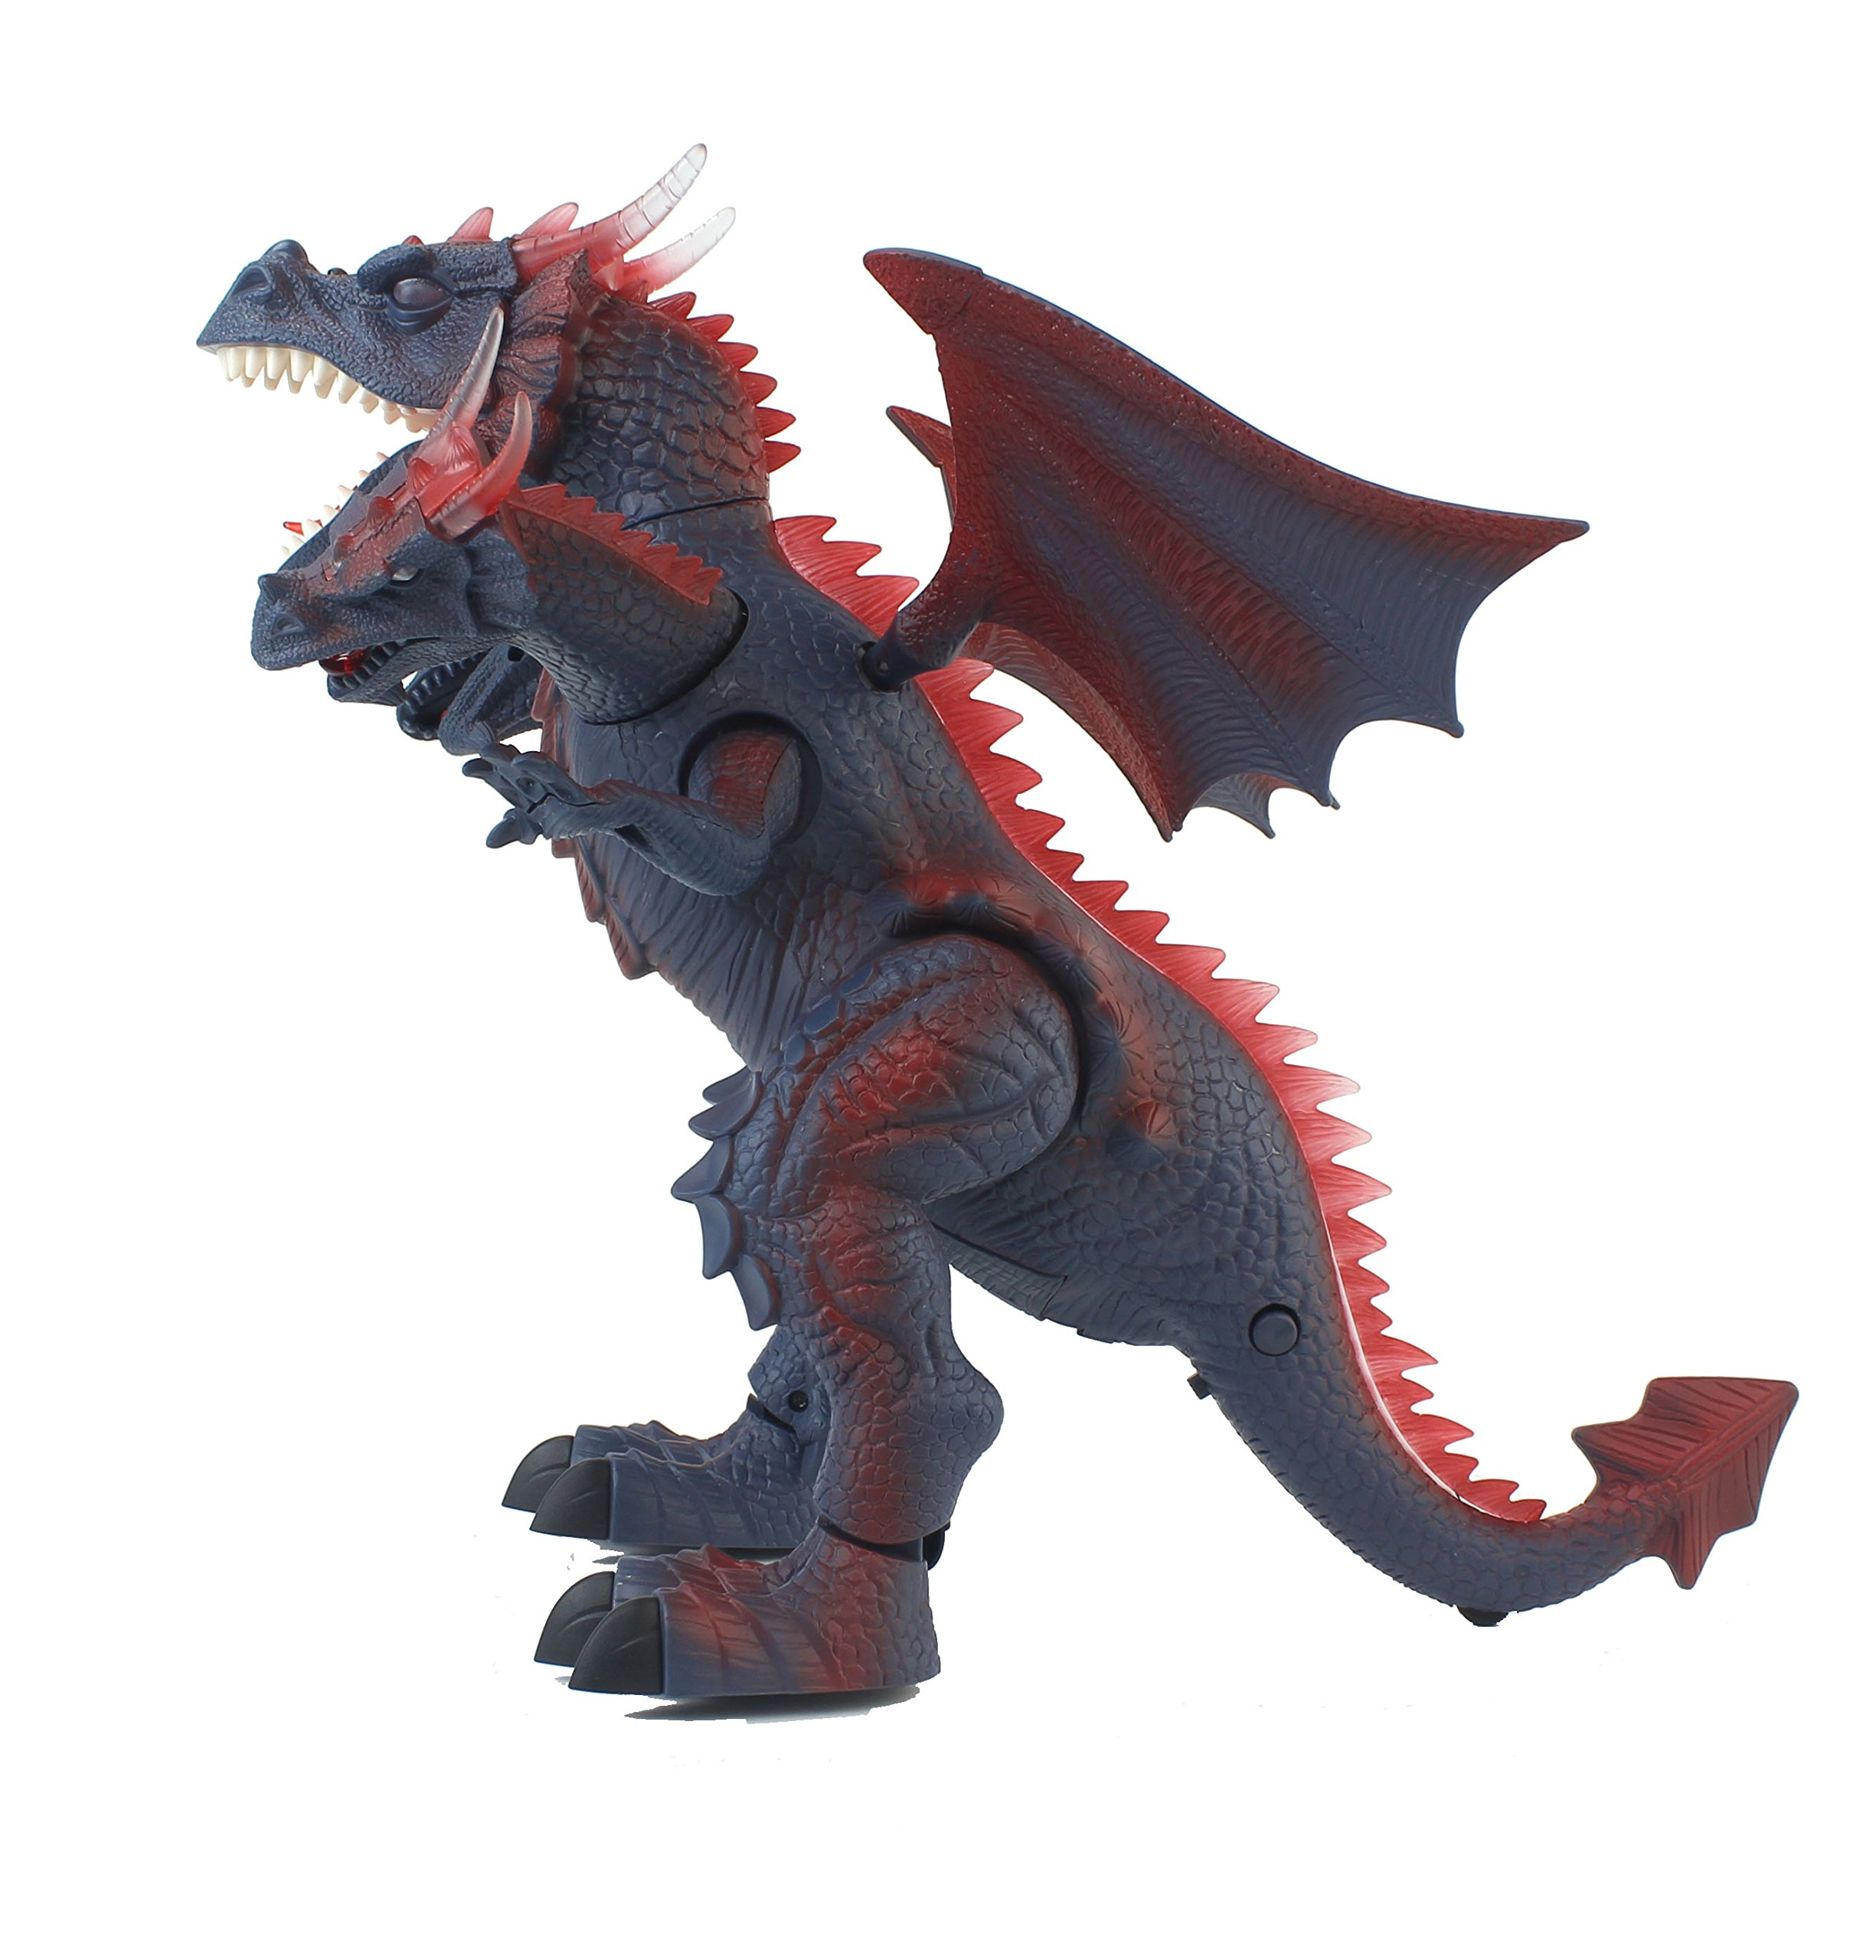 The New World of Dinosaurs Battery Operated Remote Control Toy RC Three Headed Dragon w/ Lights, Sounds, Walking/Wing/Mouth Action, & Flashlight Remote Contro by Velocity Toys (Image #3)